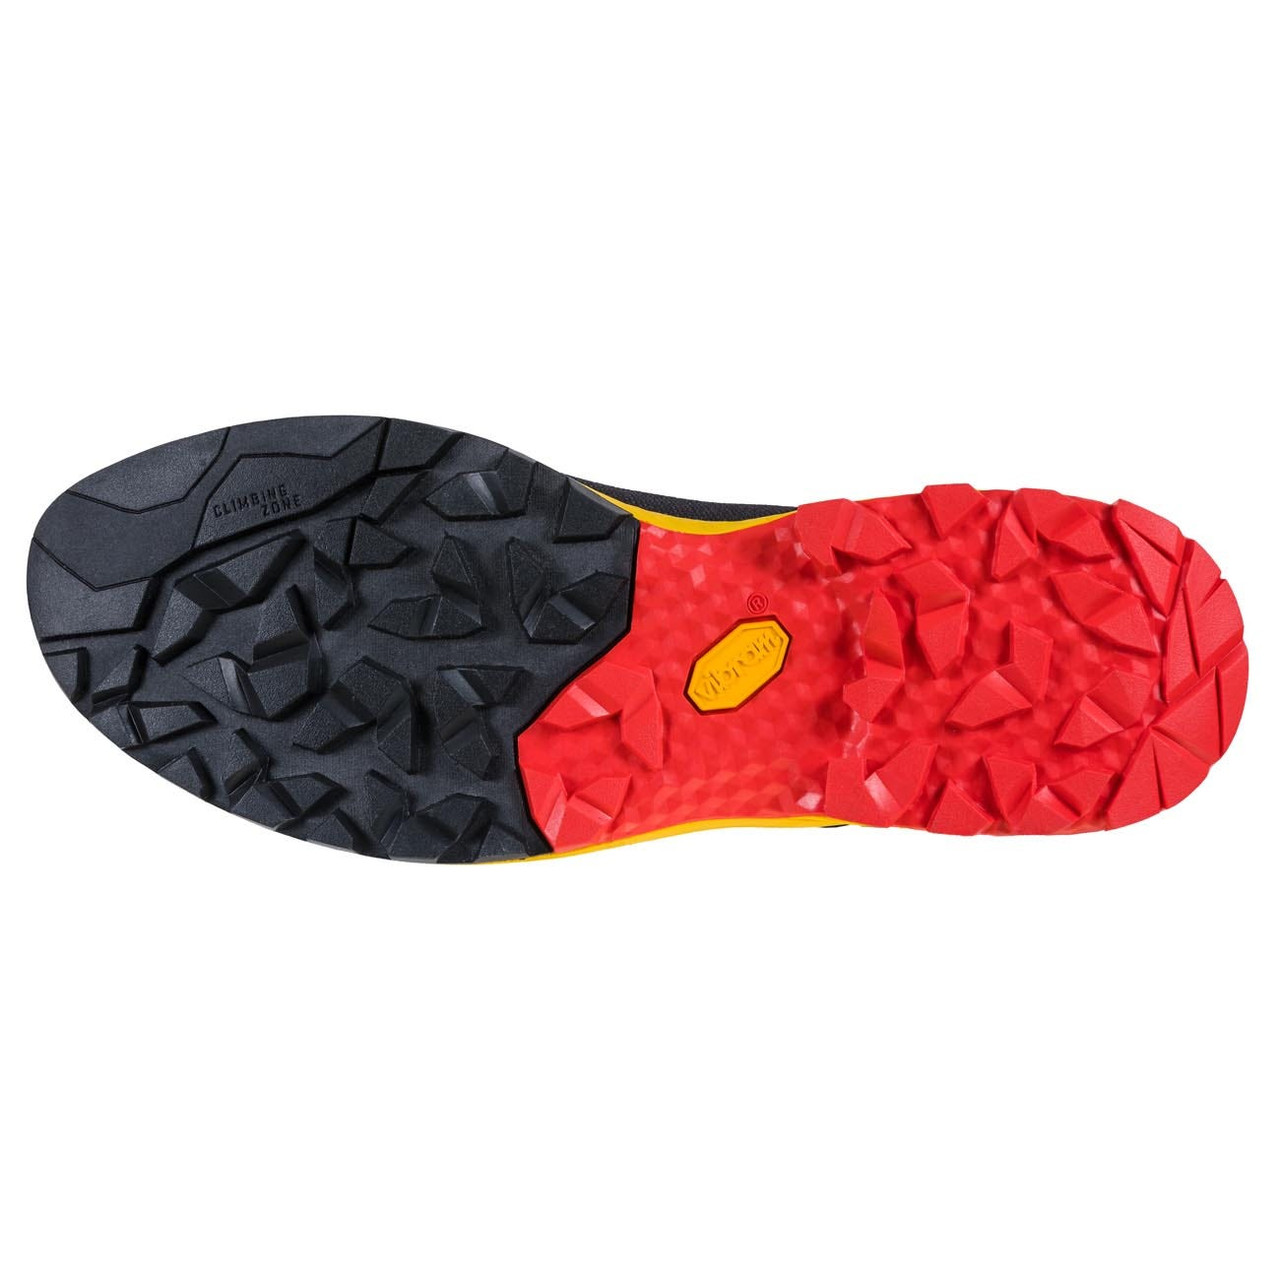 La Sportiva TX Guide - Men's Approach Shoe Bottom Online at Mountain Mail Order South Africa